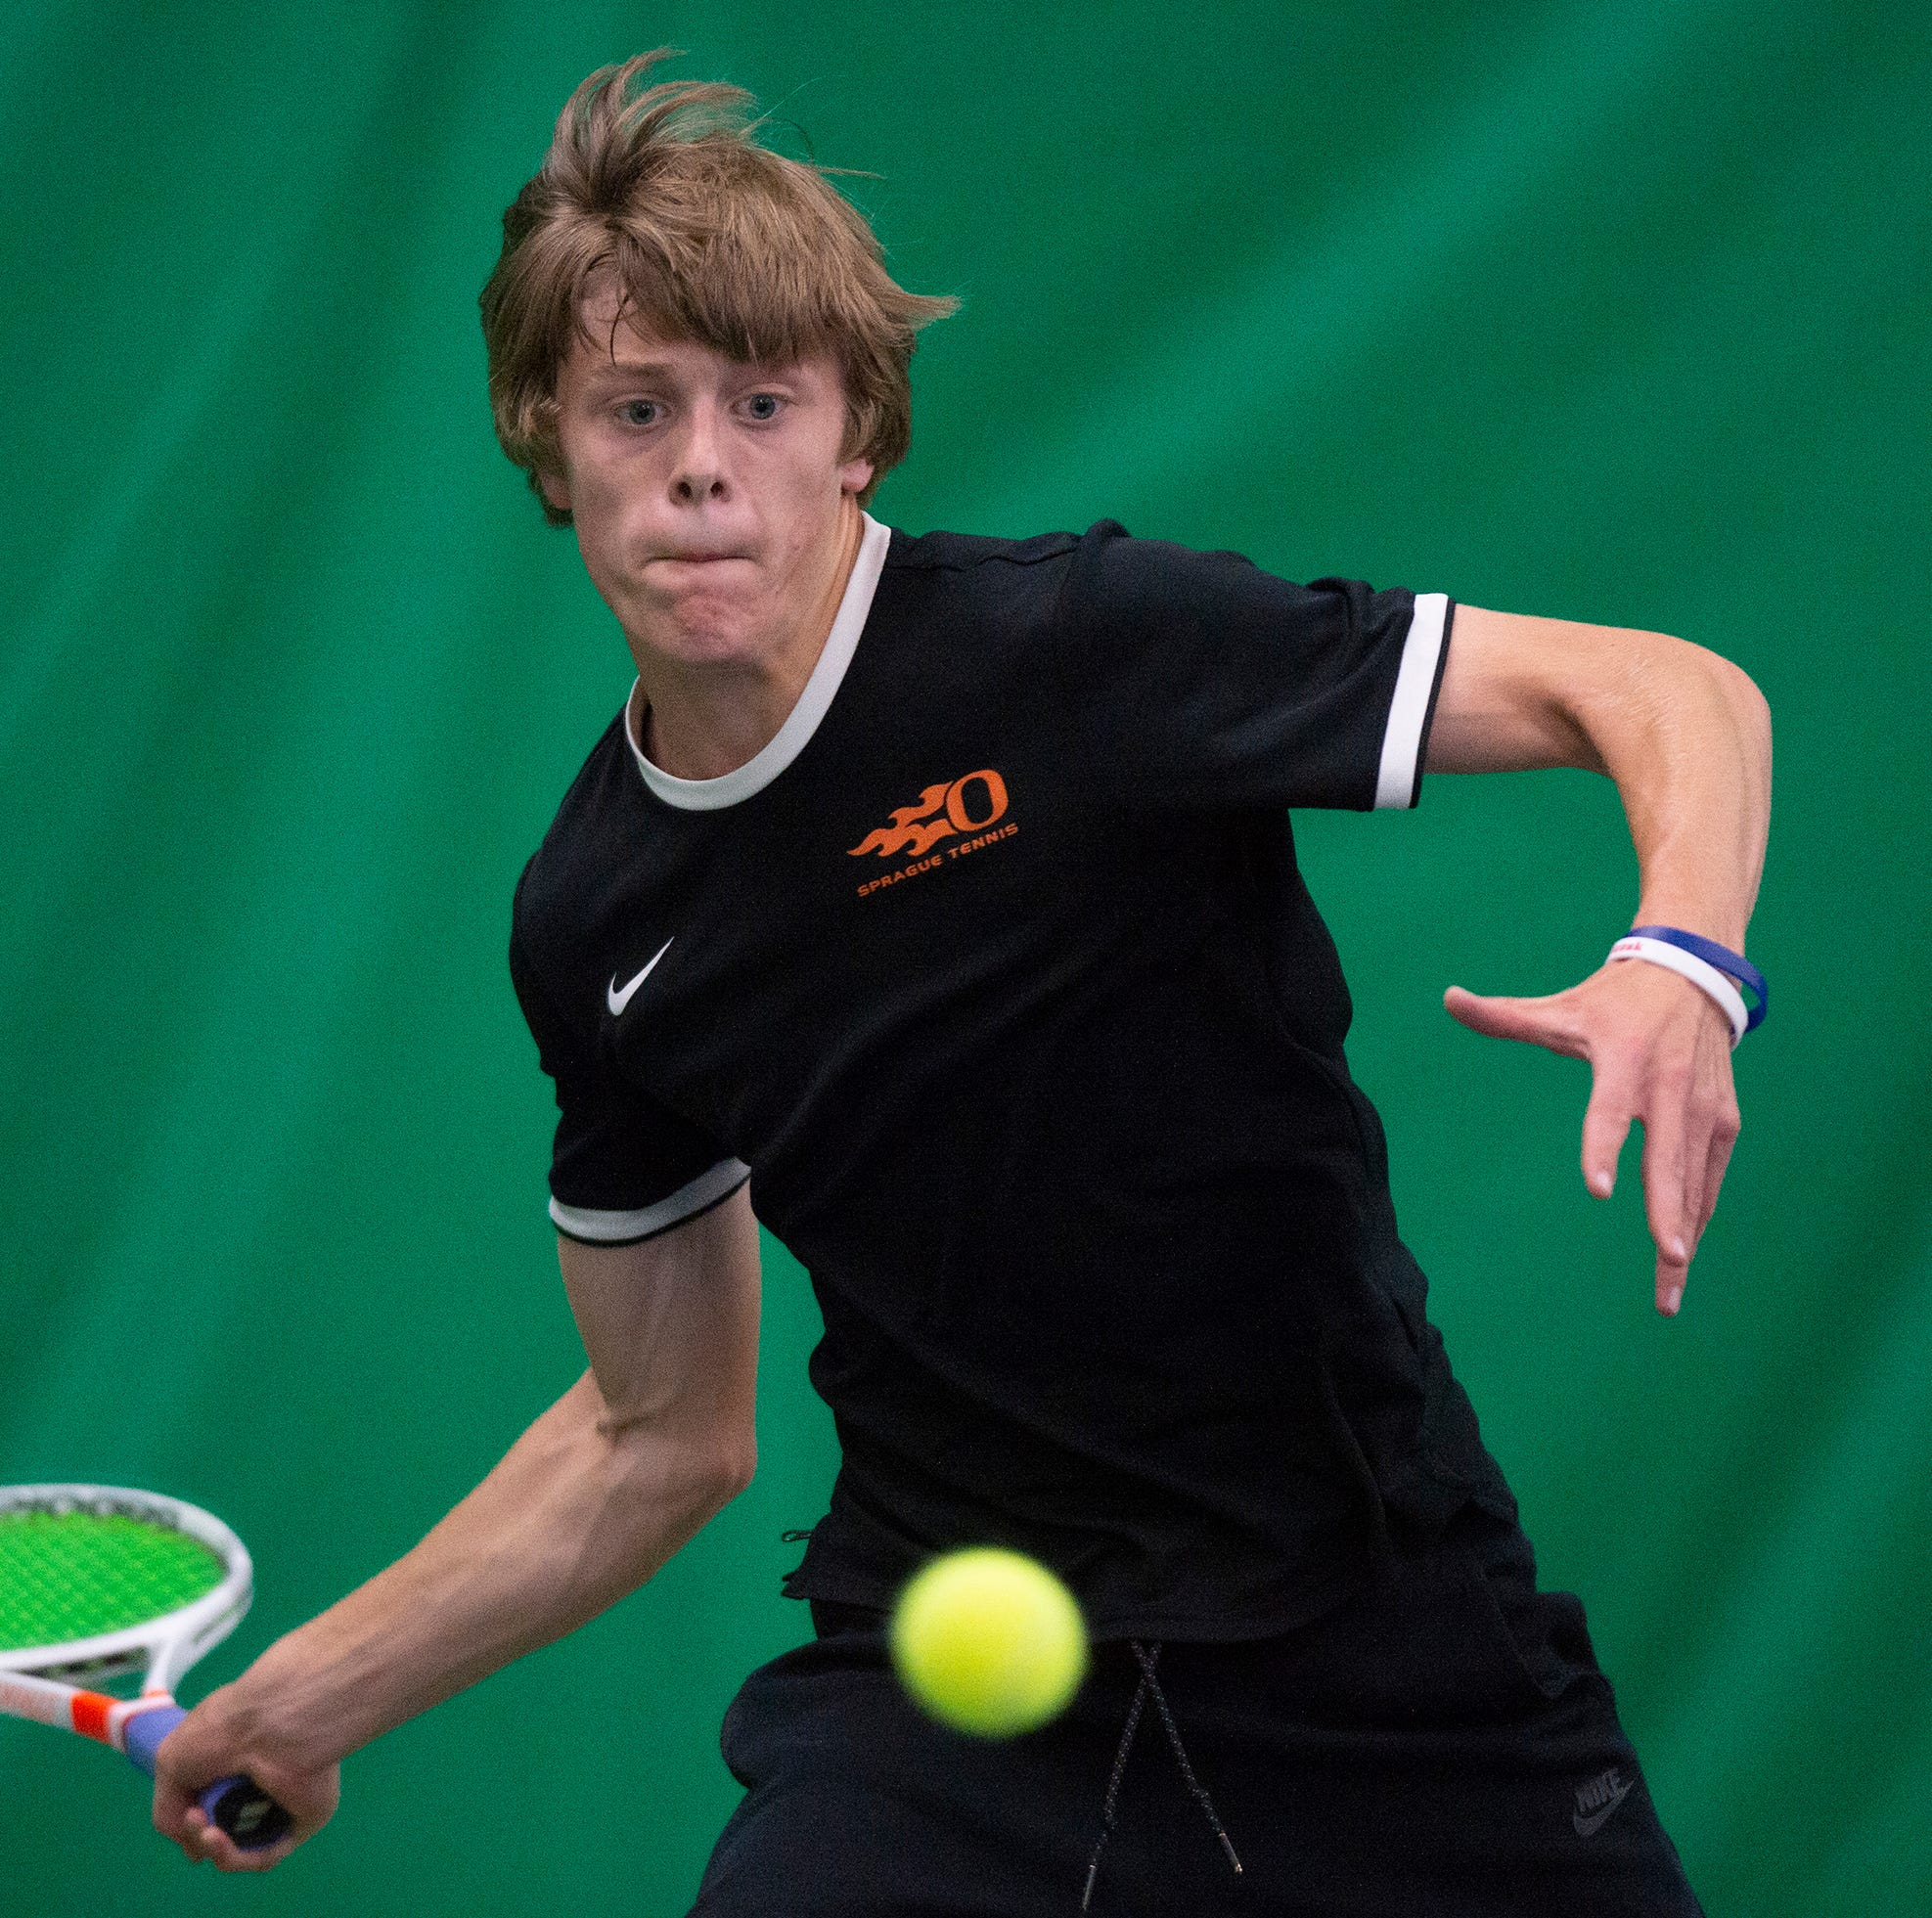 OSAA tennis: Sprague's Judson Blair advances to title match, amid controversy